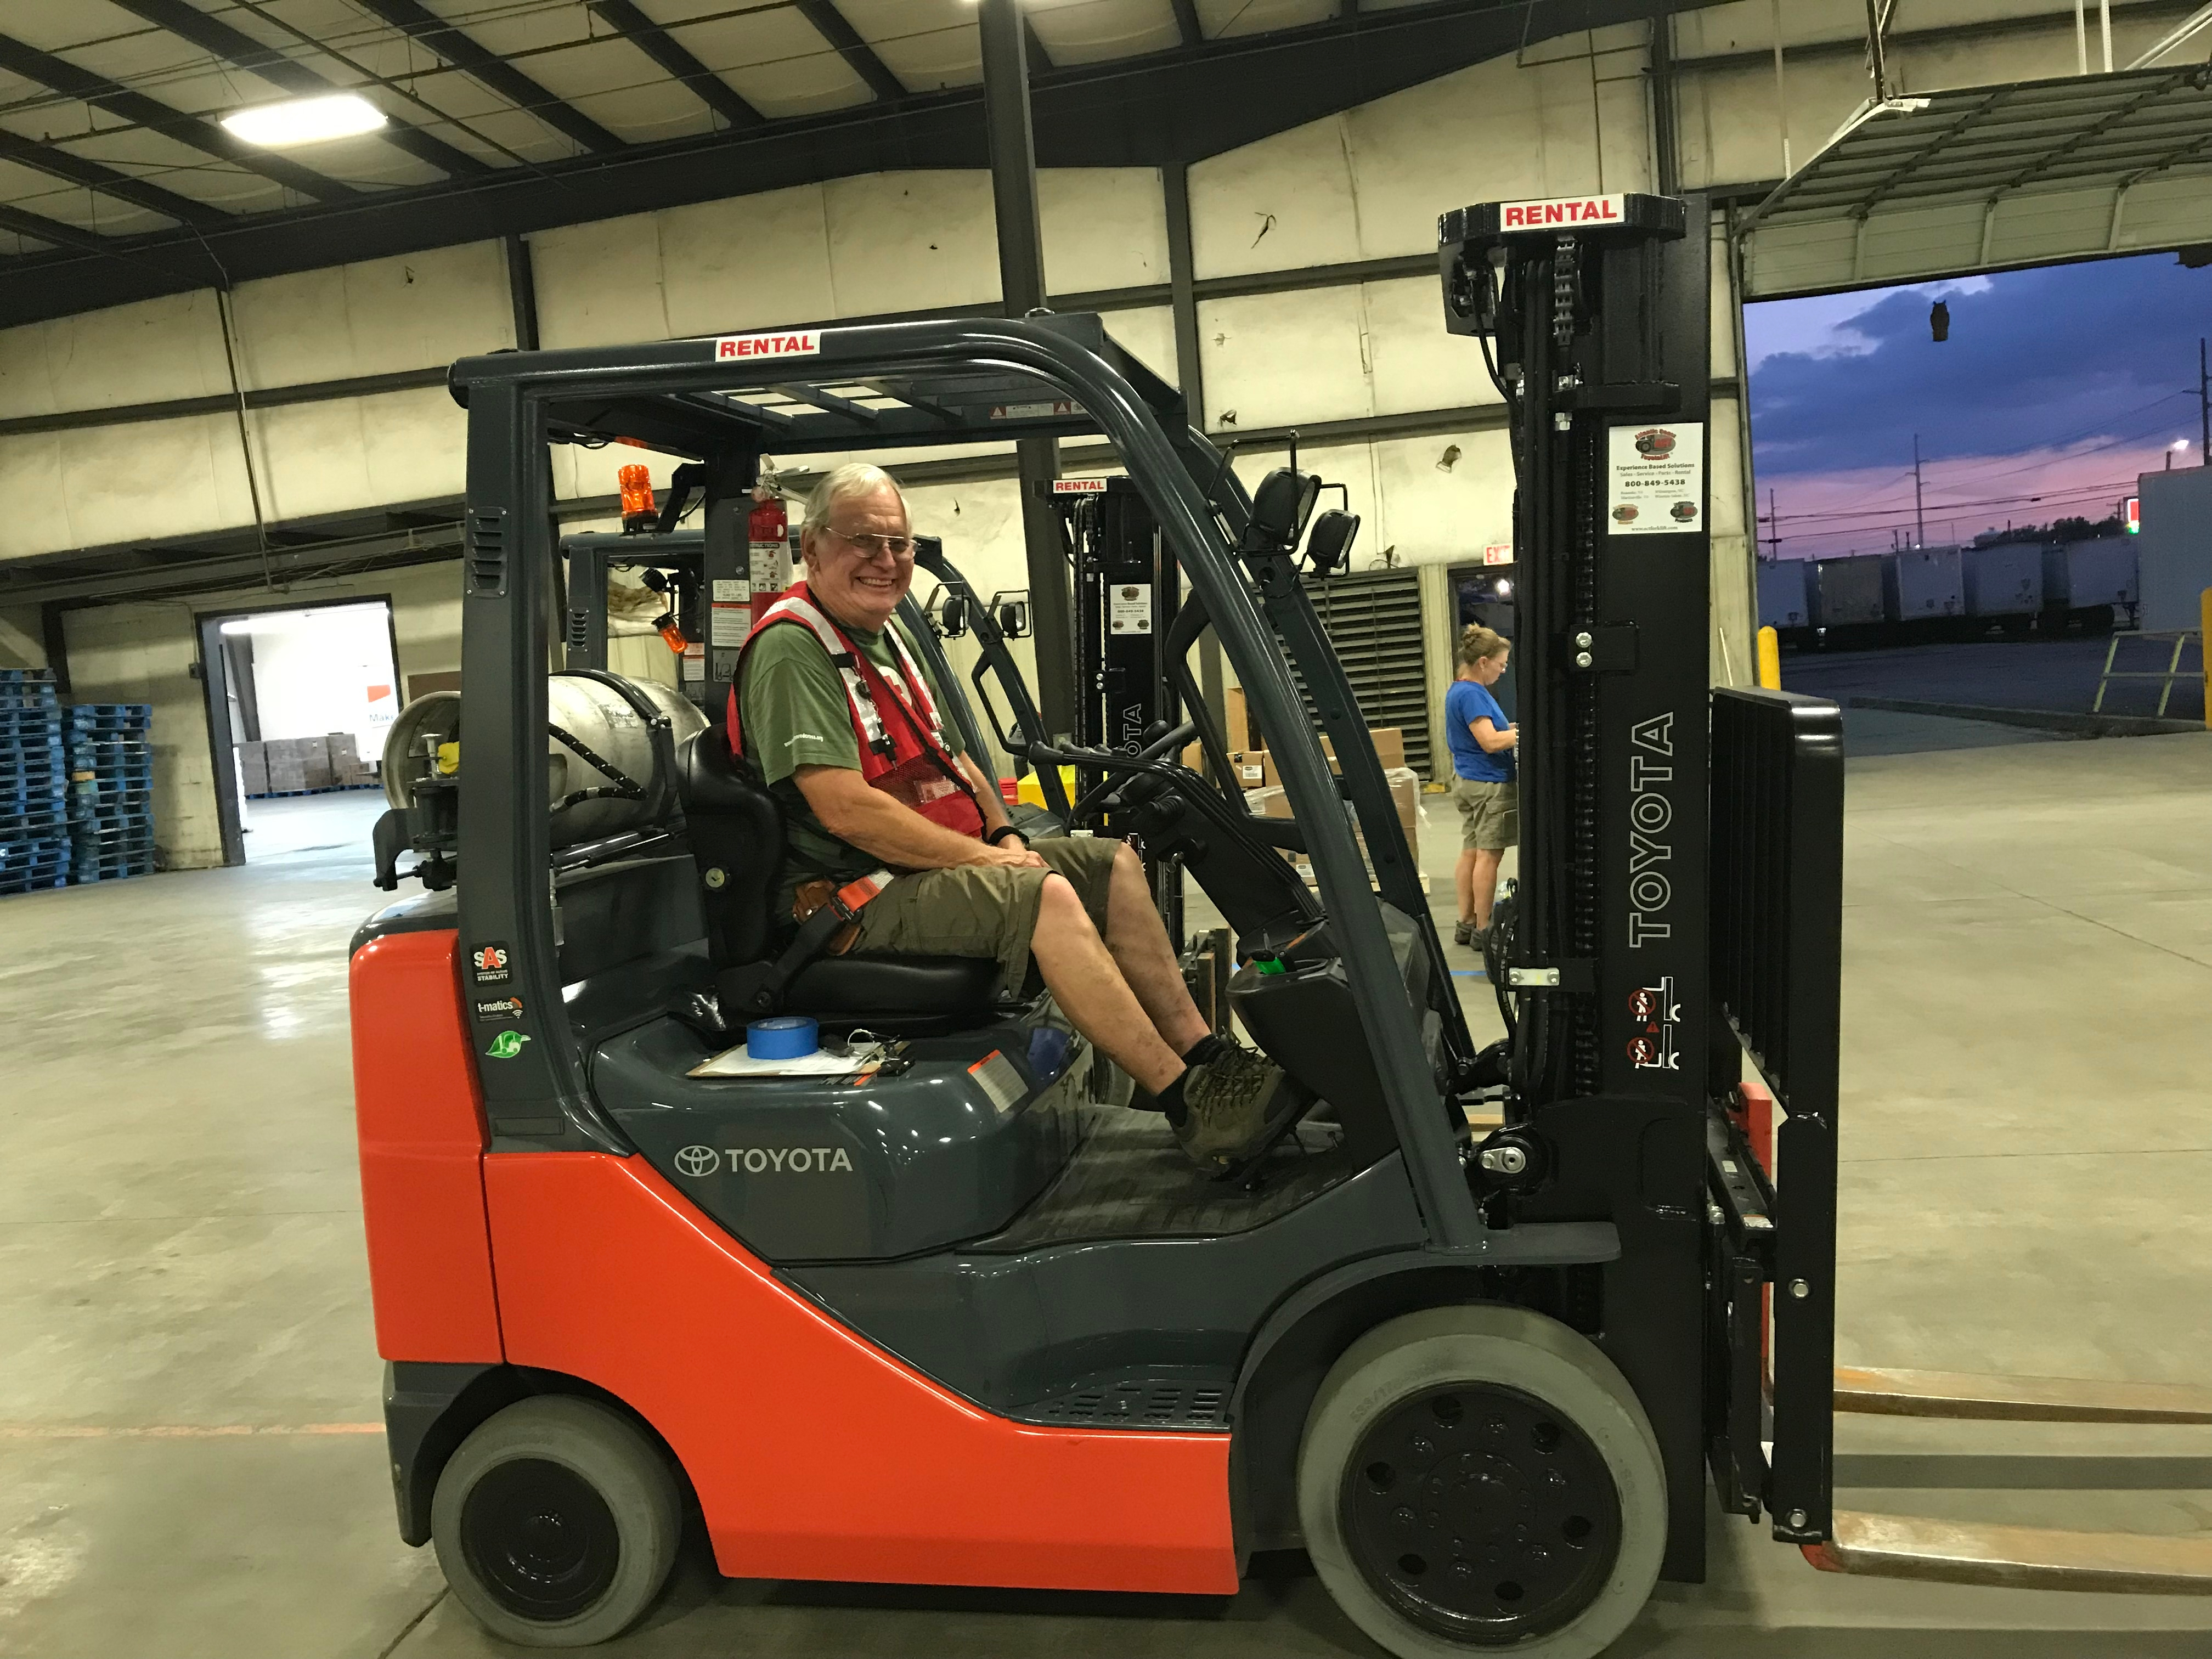 Red Cross volunteer driving a fork lift in a warehouse.